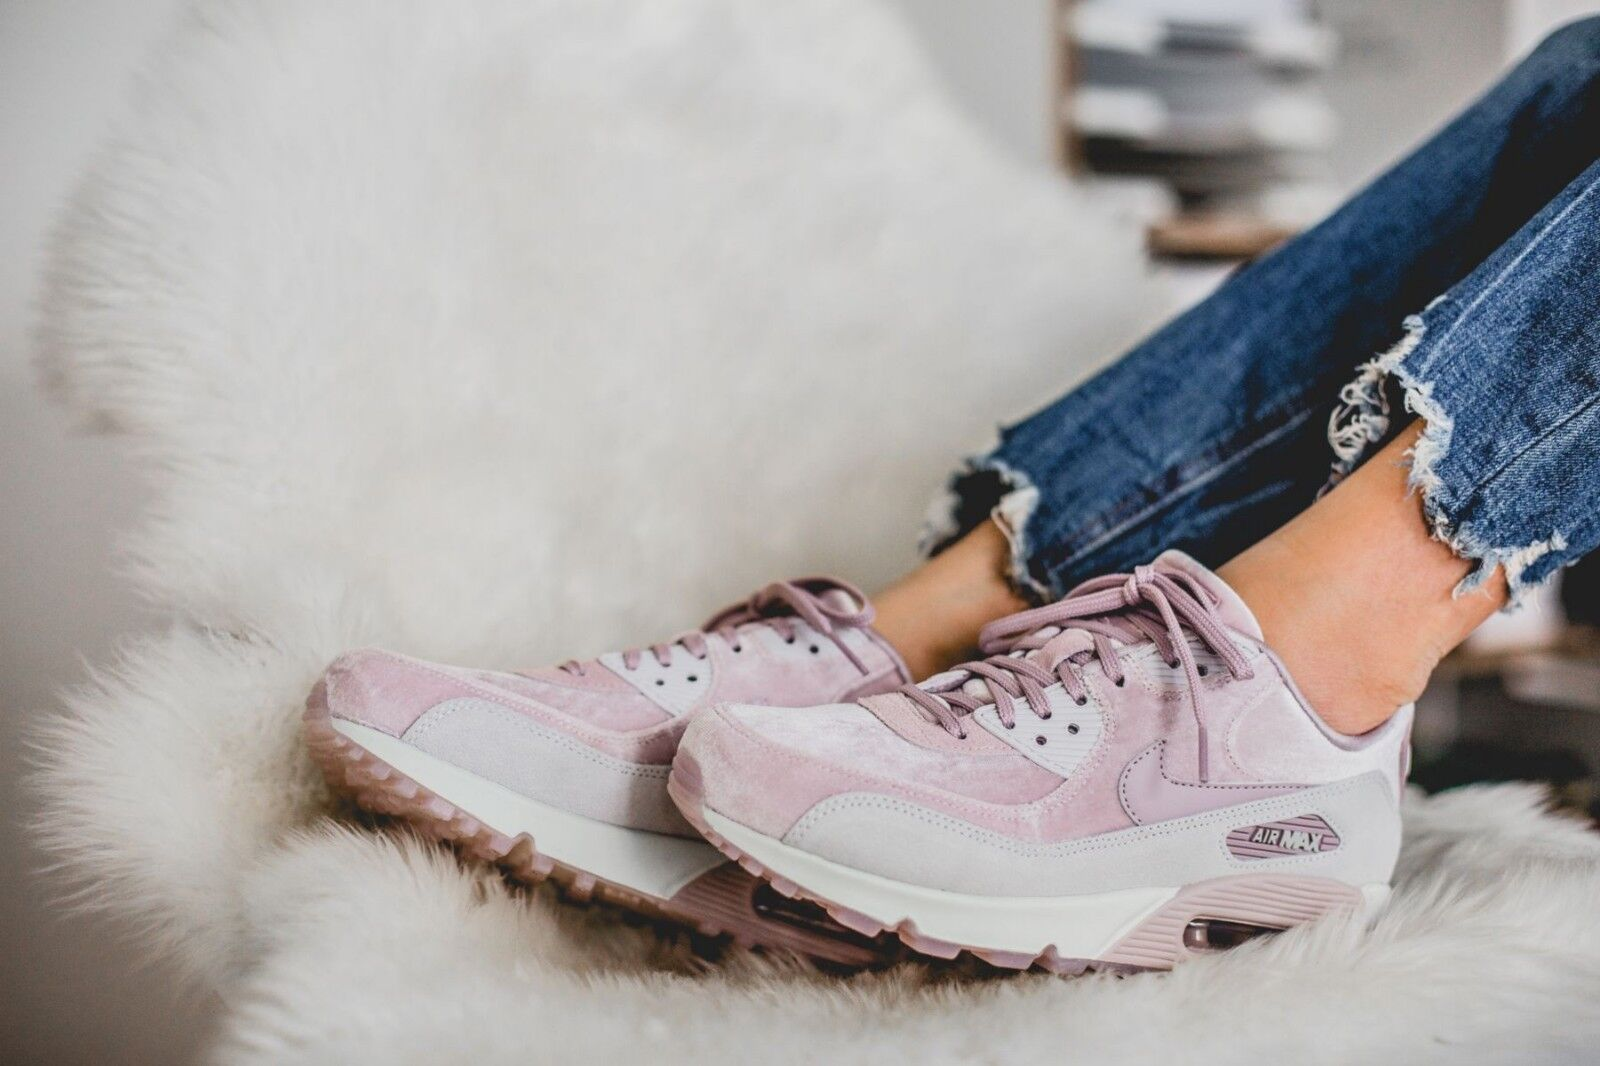 Nike air max 90 lx 898512 600 (velvet / greves) di rose wmn sz - 9